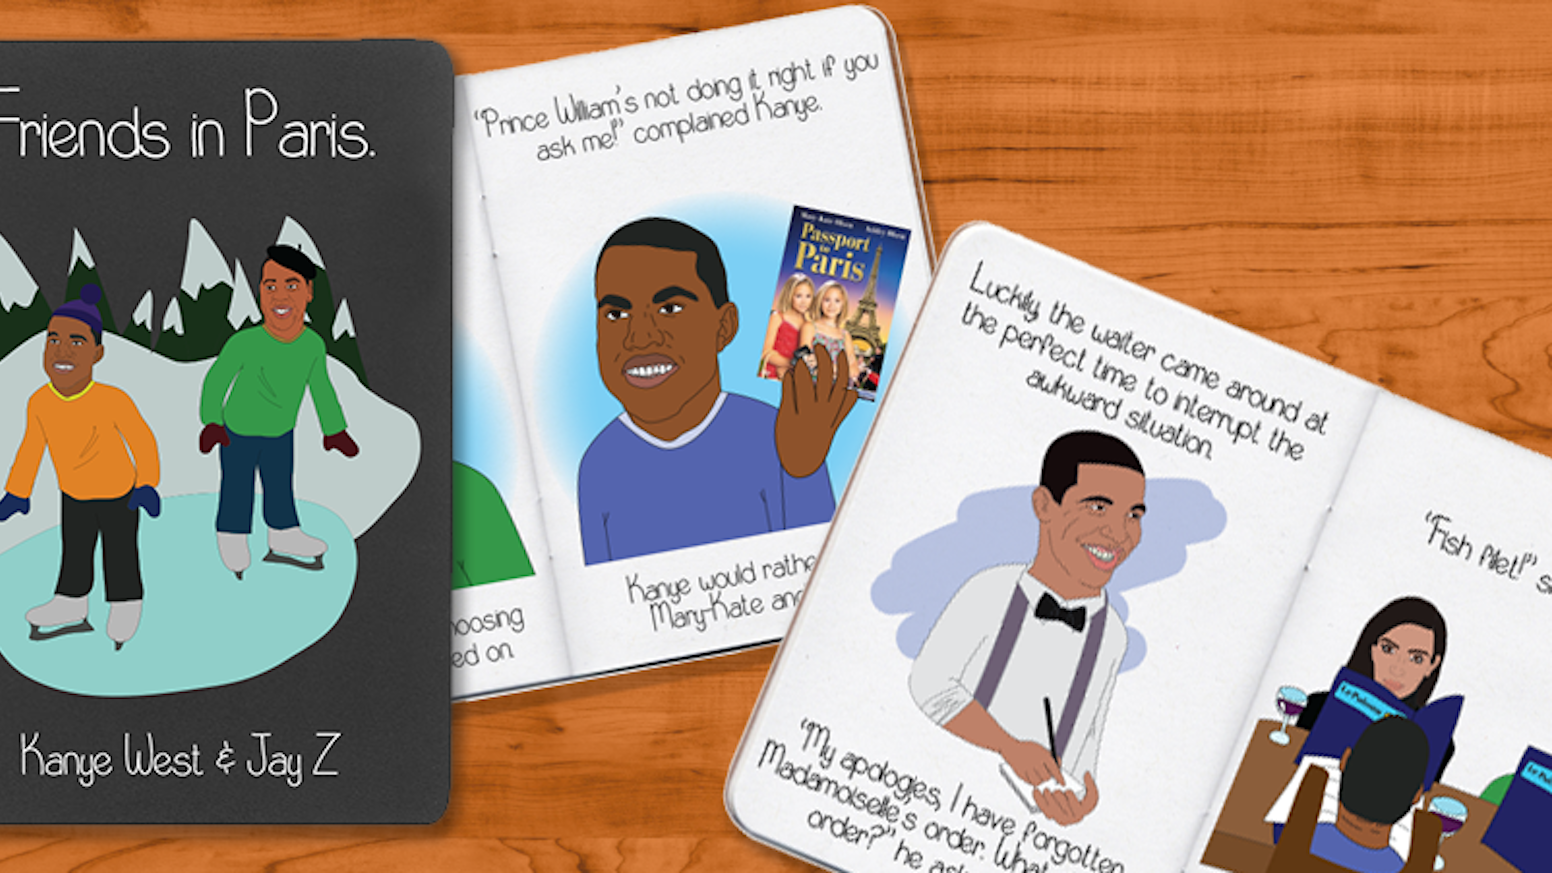 We reinterpreted Jay Z and Kanye's popular song into a picture book - 'Friends In Paris' and sent it to press.